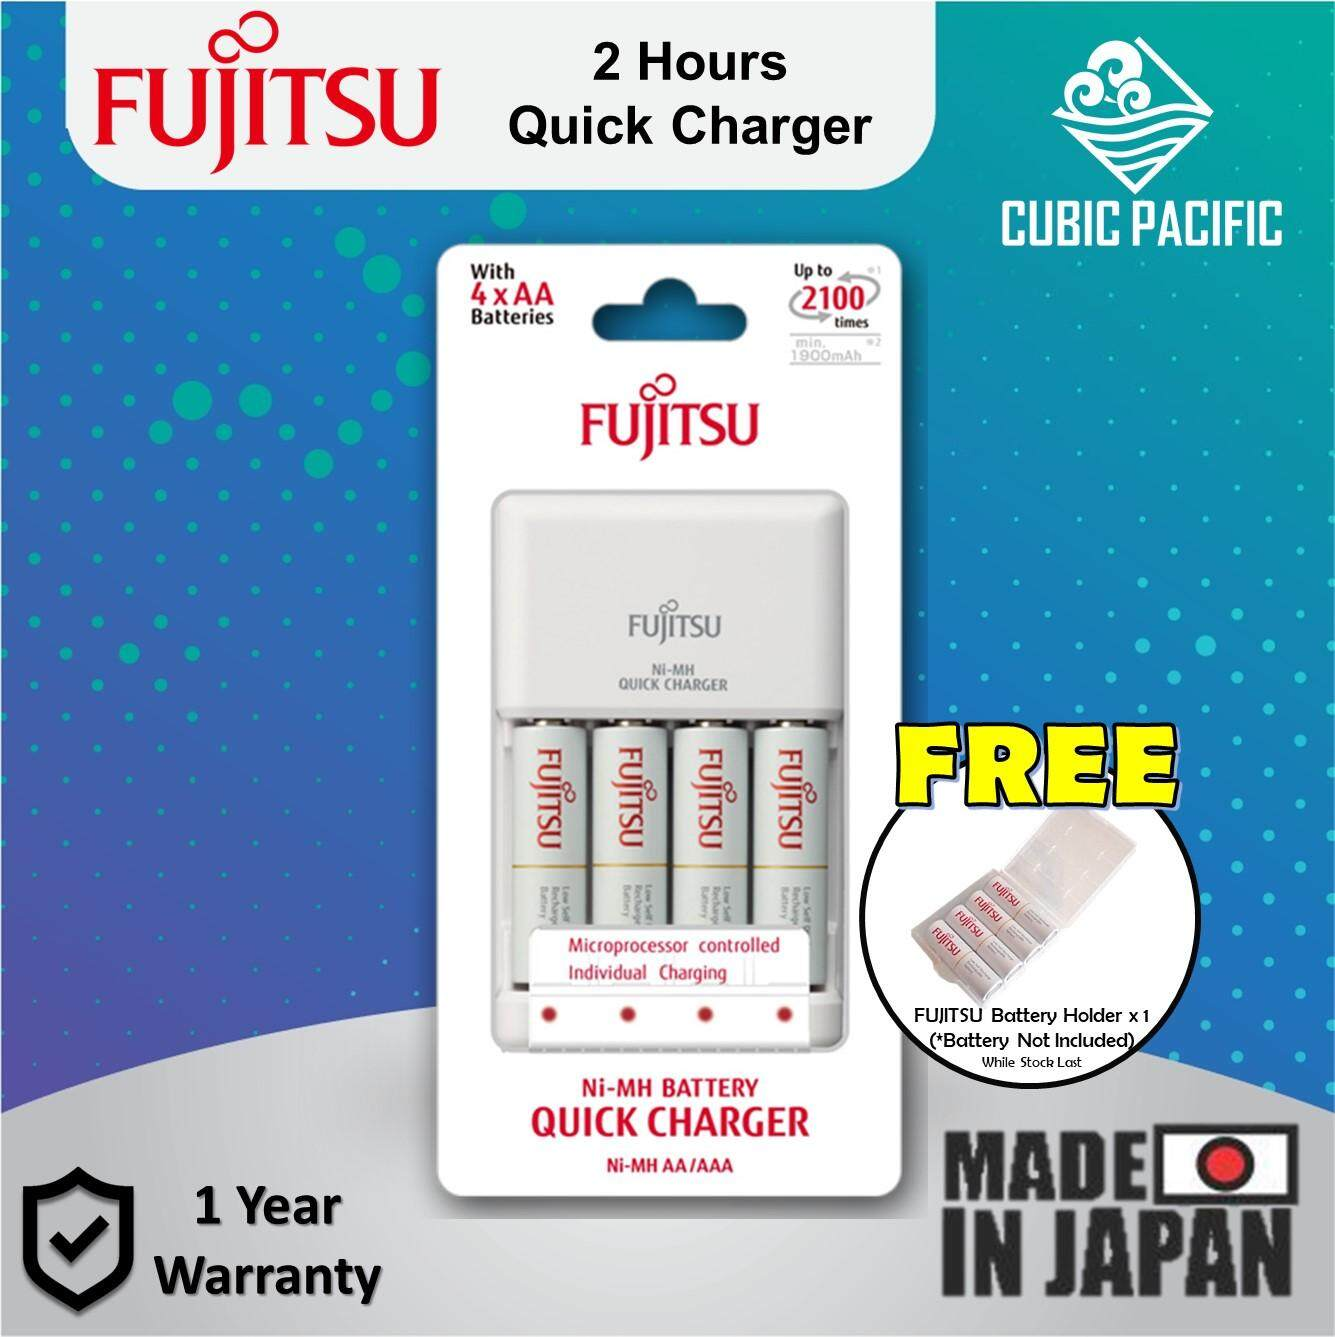 Fujitsu 2 Hour Quick Charger 4 Cells Standard AA Rechargeable Battery 2000mAh (Free Battery Holder) Malaysia